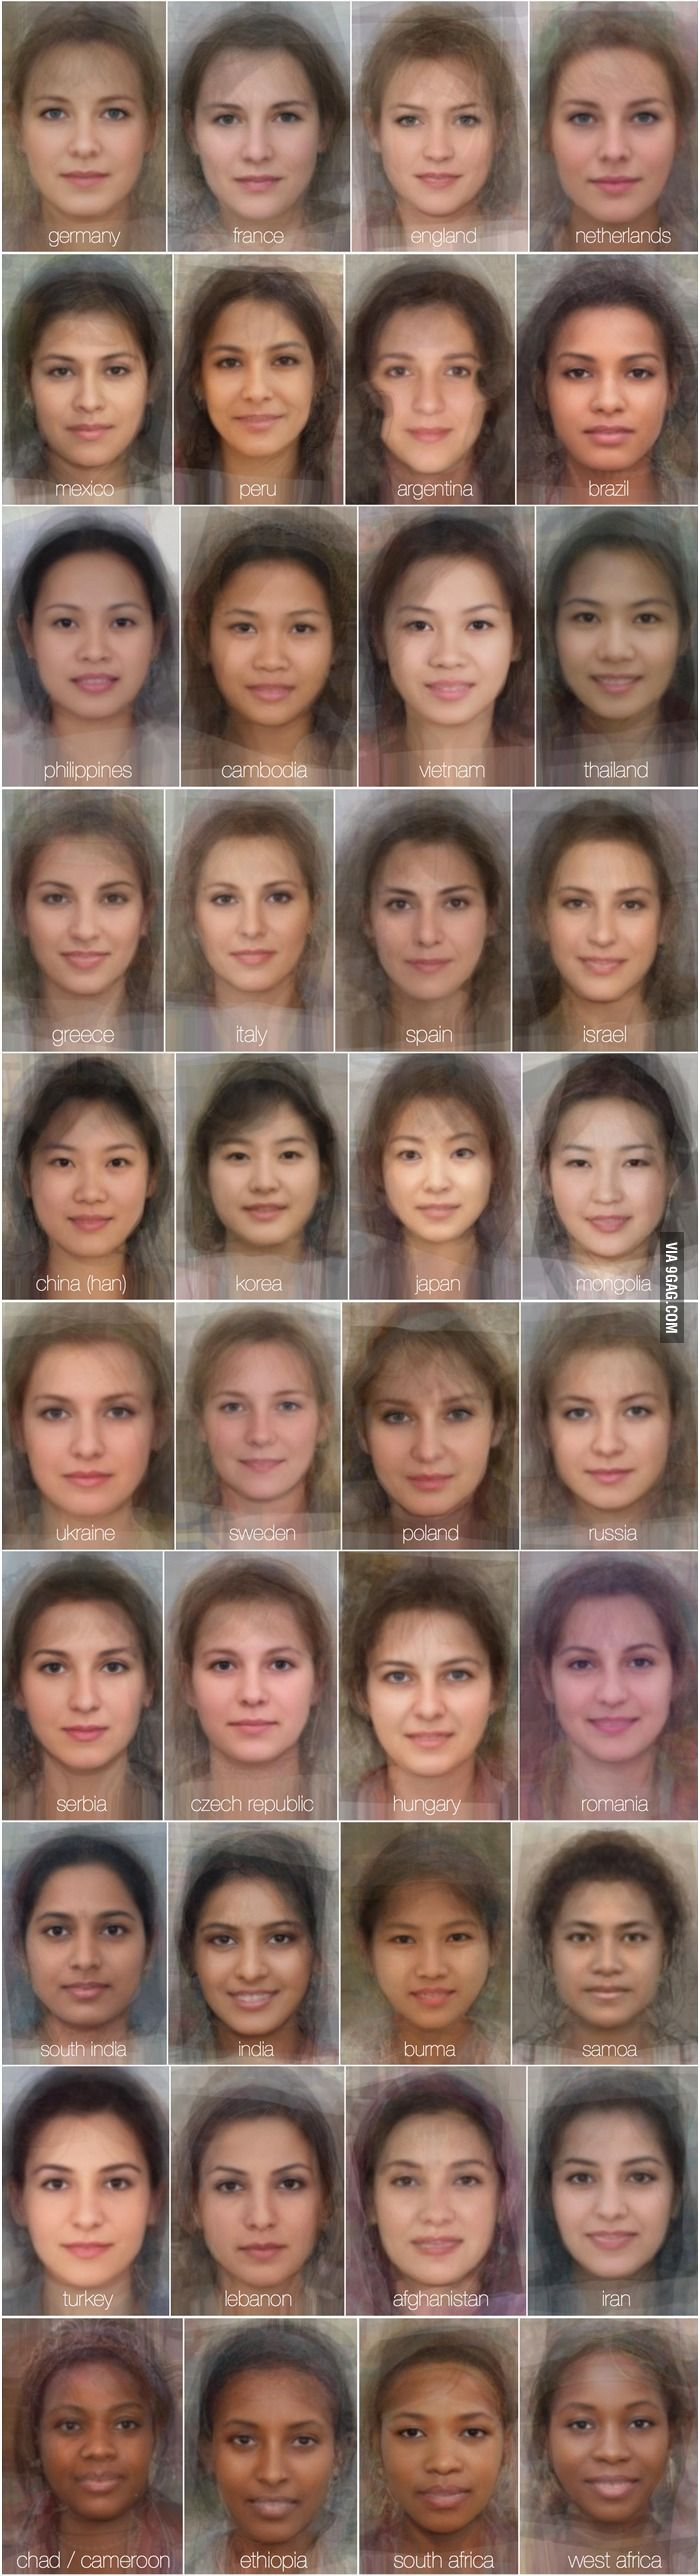 The Average Women Faces In Different Countries... crazy im german, netherlands, and sweden combined...